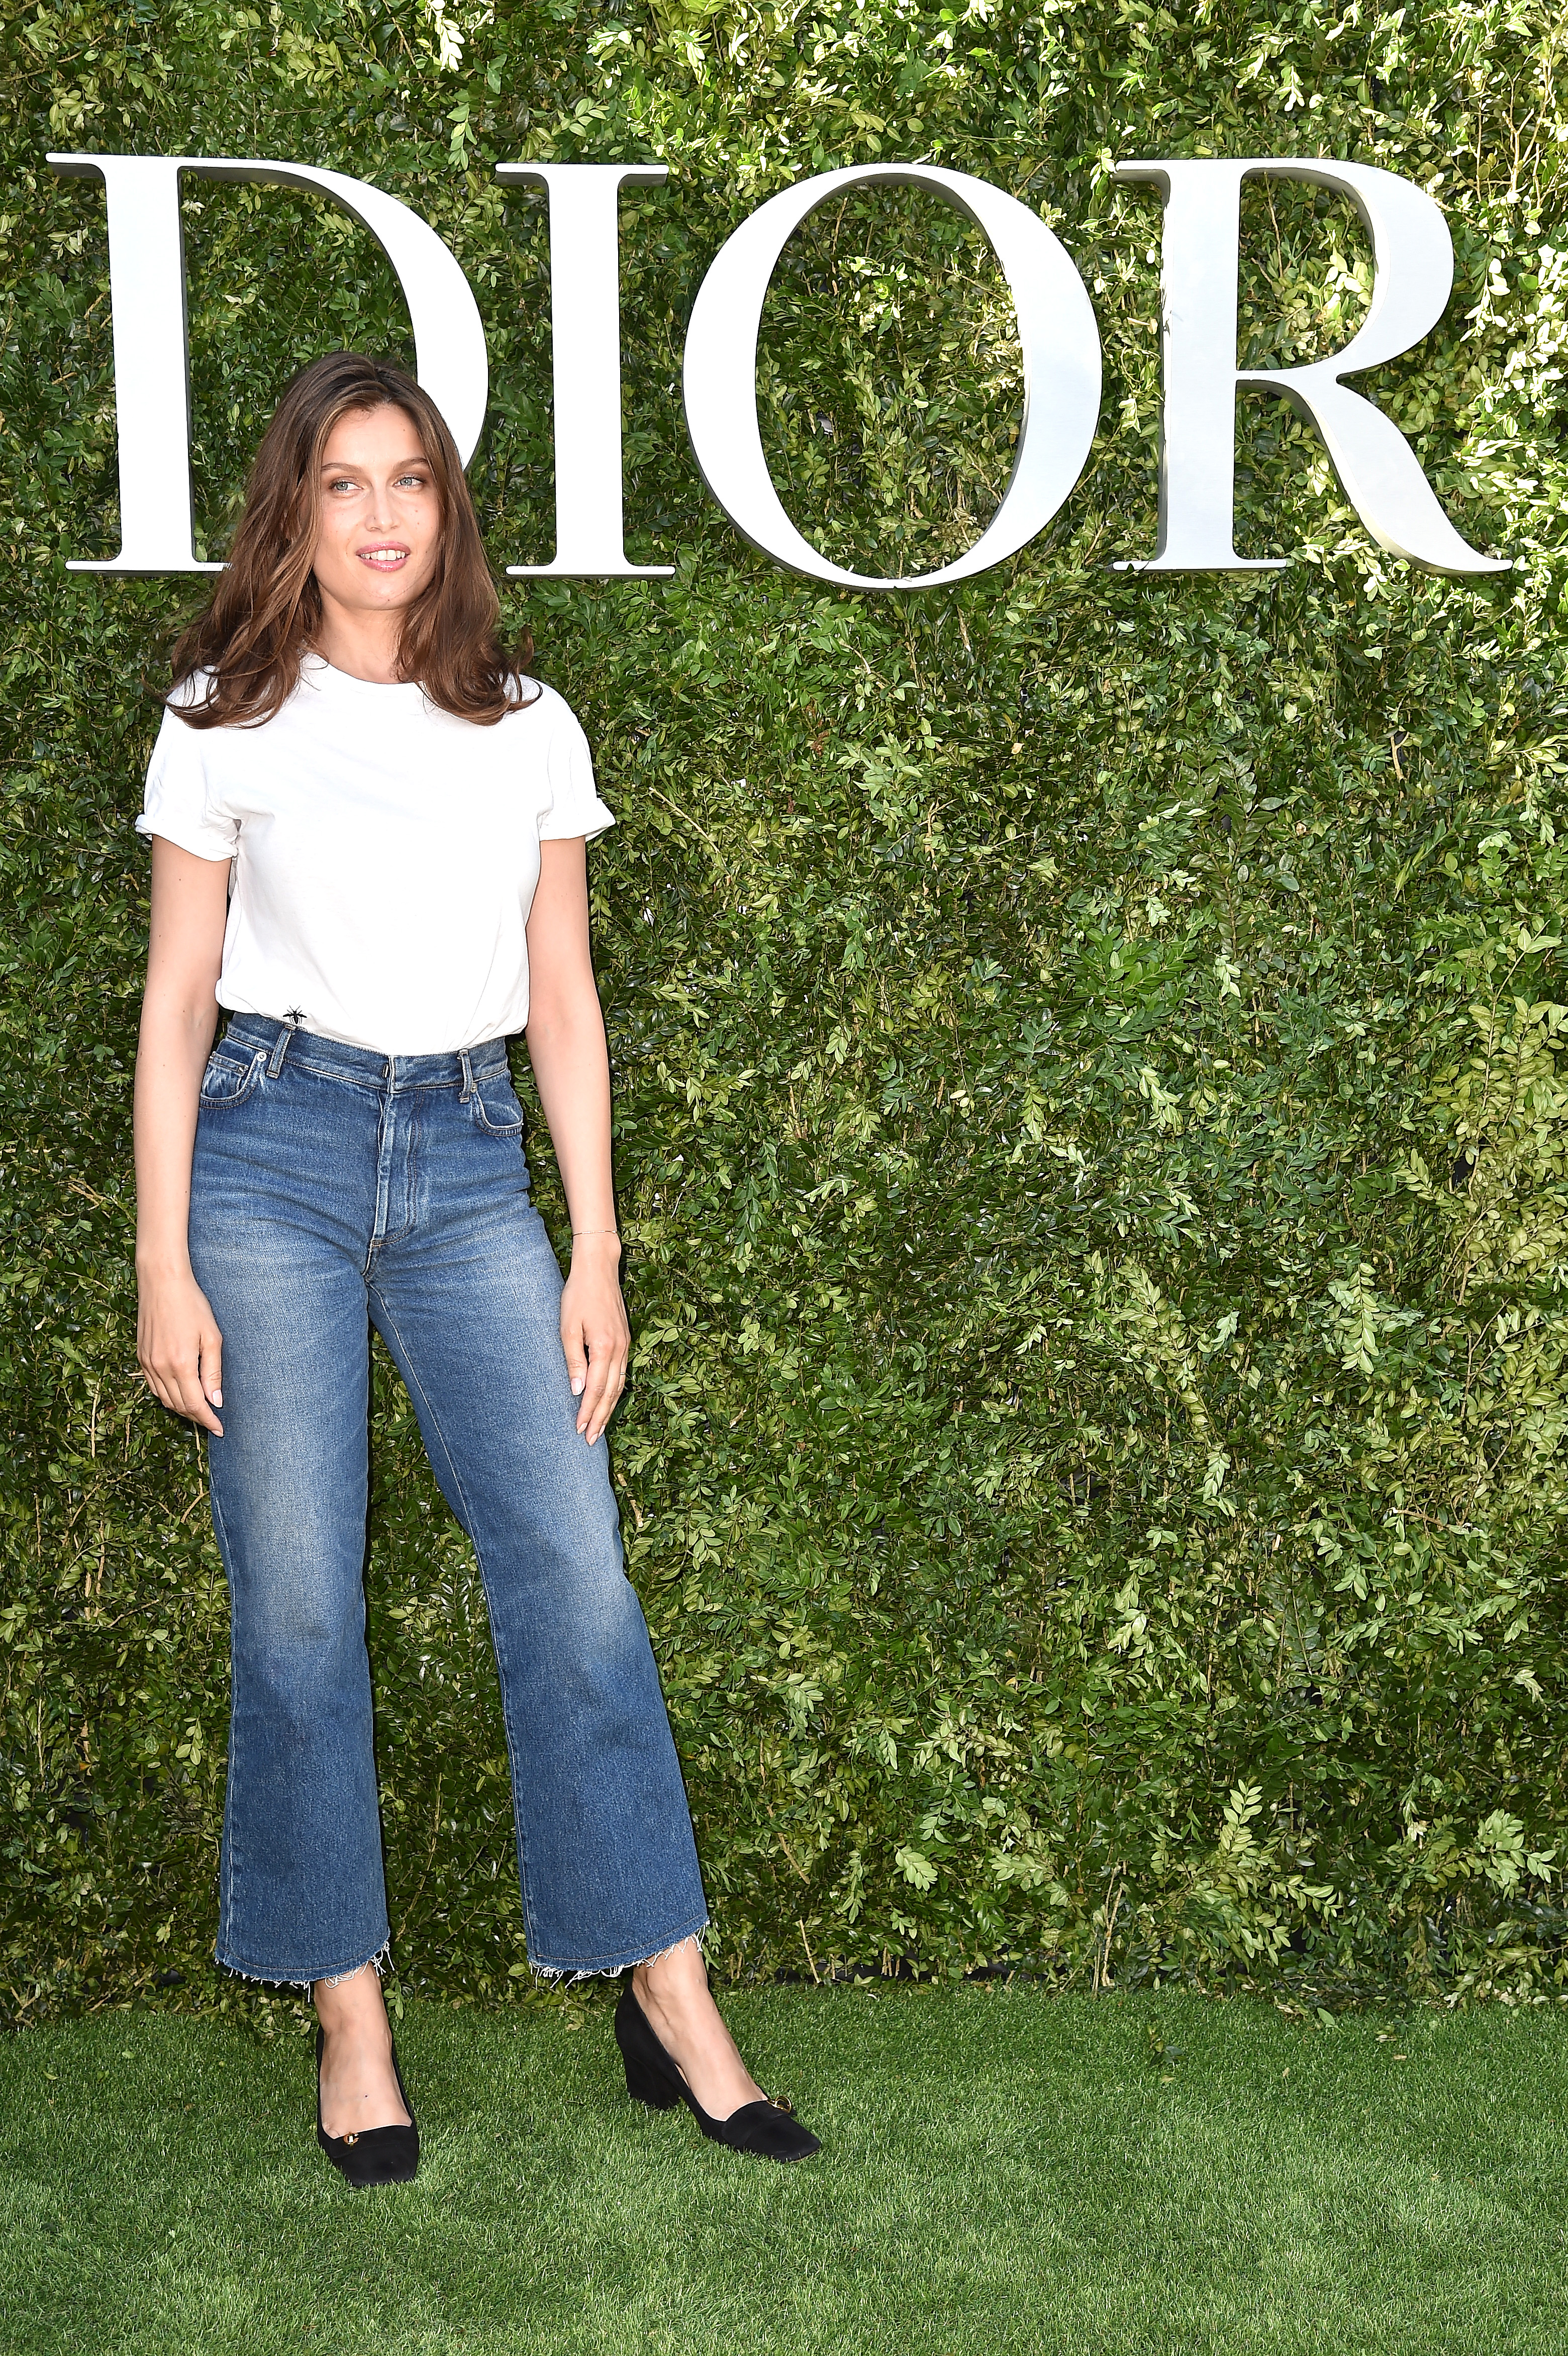 PARIS, FRANCE - JULY 03:  Laetitia Casta attends 'Christian Dior, couturier du reve' Exhibition Launch celebrating 70 years of creation  at Musee Des Arts Decoratifs on July 3, 2017 in Paris, France.  (Photo by Jacopo Raule/Getty Images for Christian Dior) *** Local Caption *** Laetitia Casta